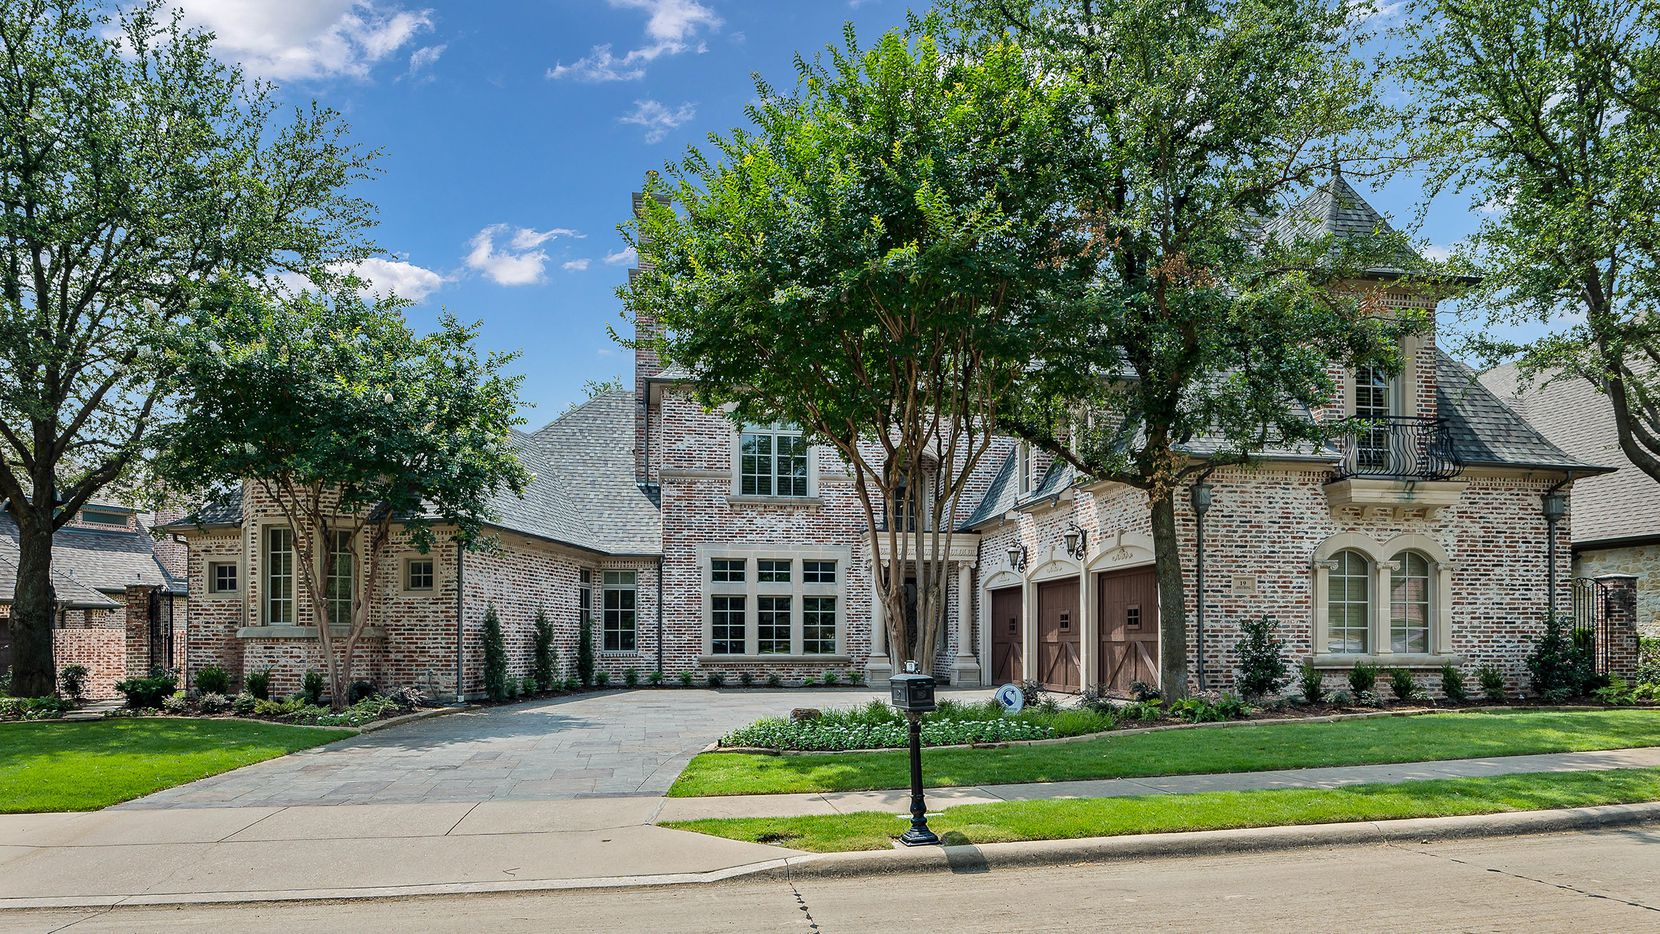 The Frisco home at 19 Armstrong Drive offers two downstairs master bedrooms and is priced at $2,449,000.